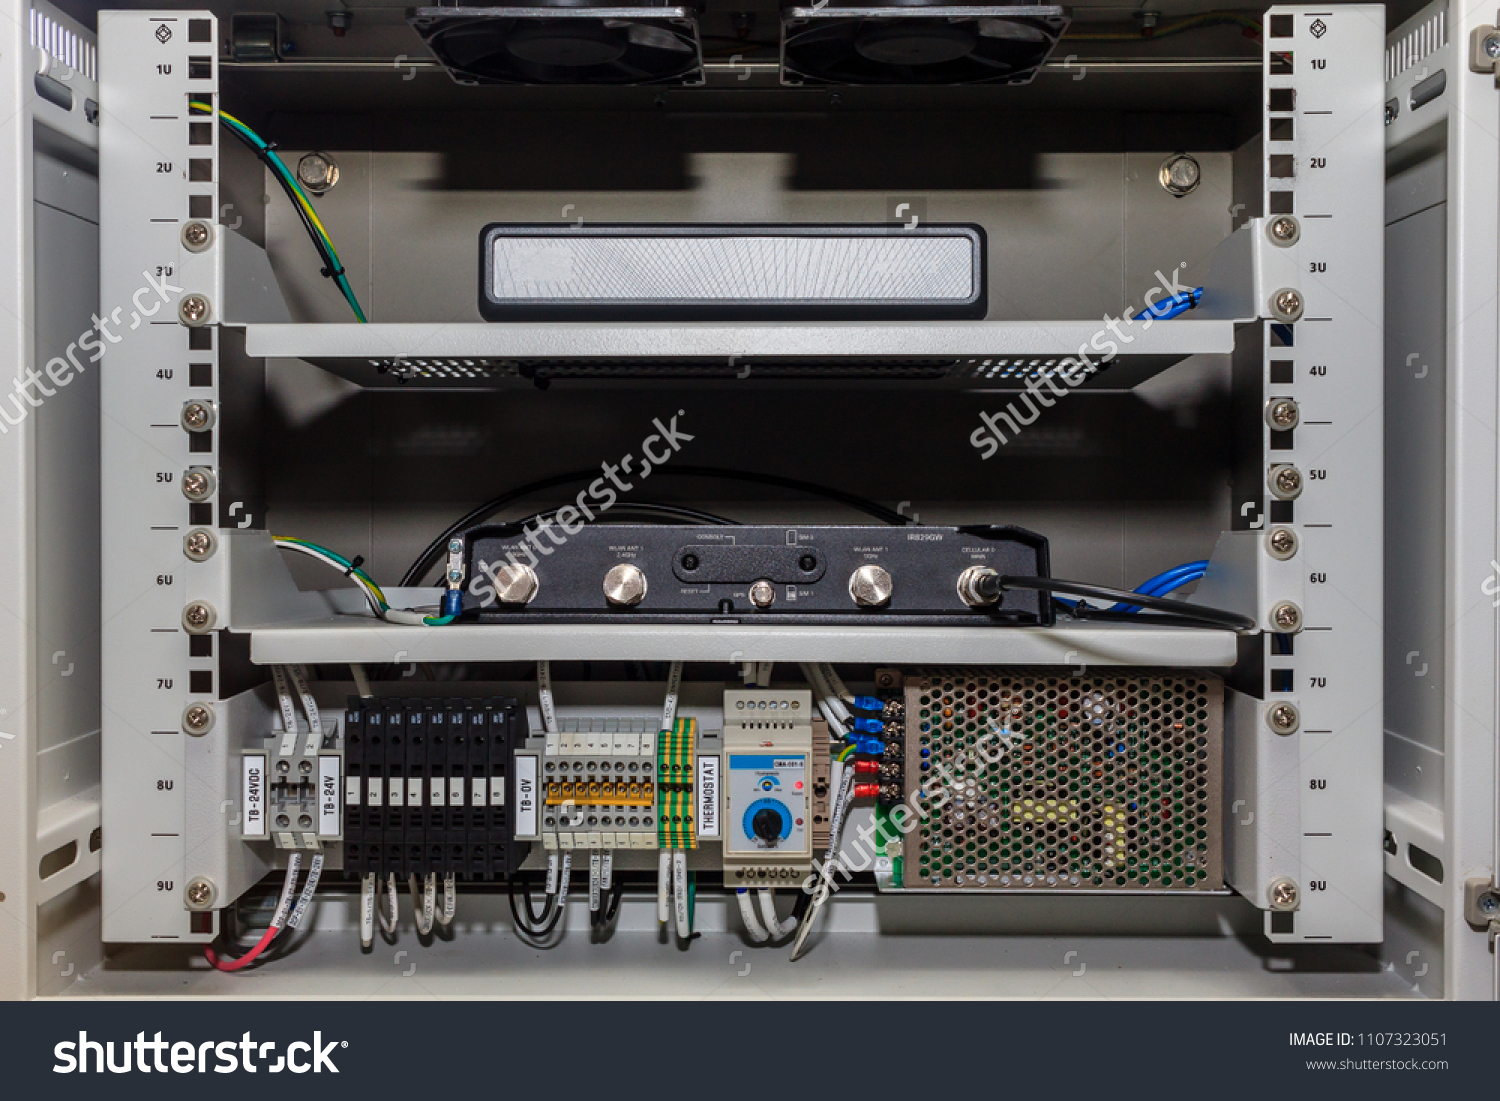 Communication Electrical Terminal Junction Box Contain Stock Photo Home Wiring With 4g Router Vg Cable Gland